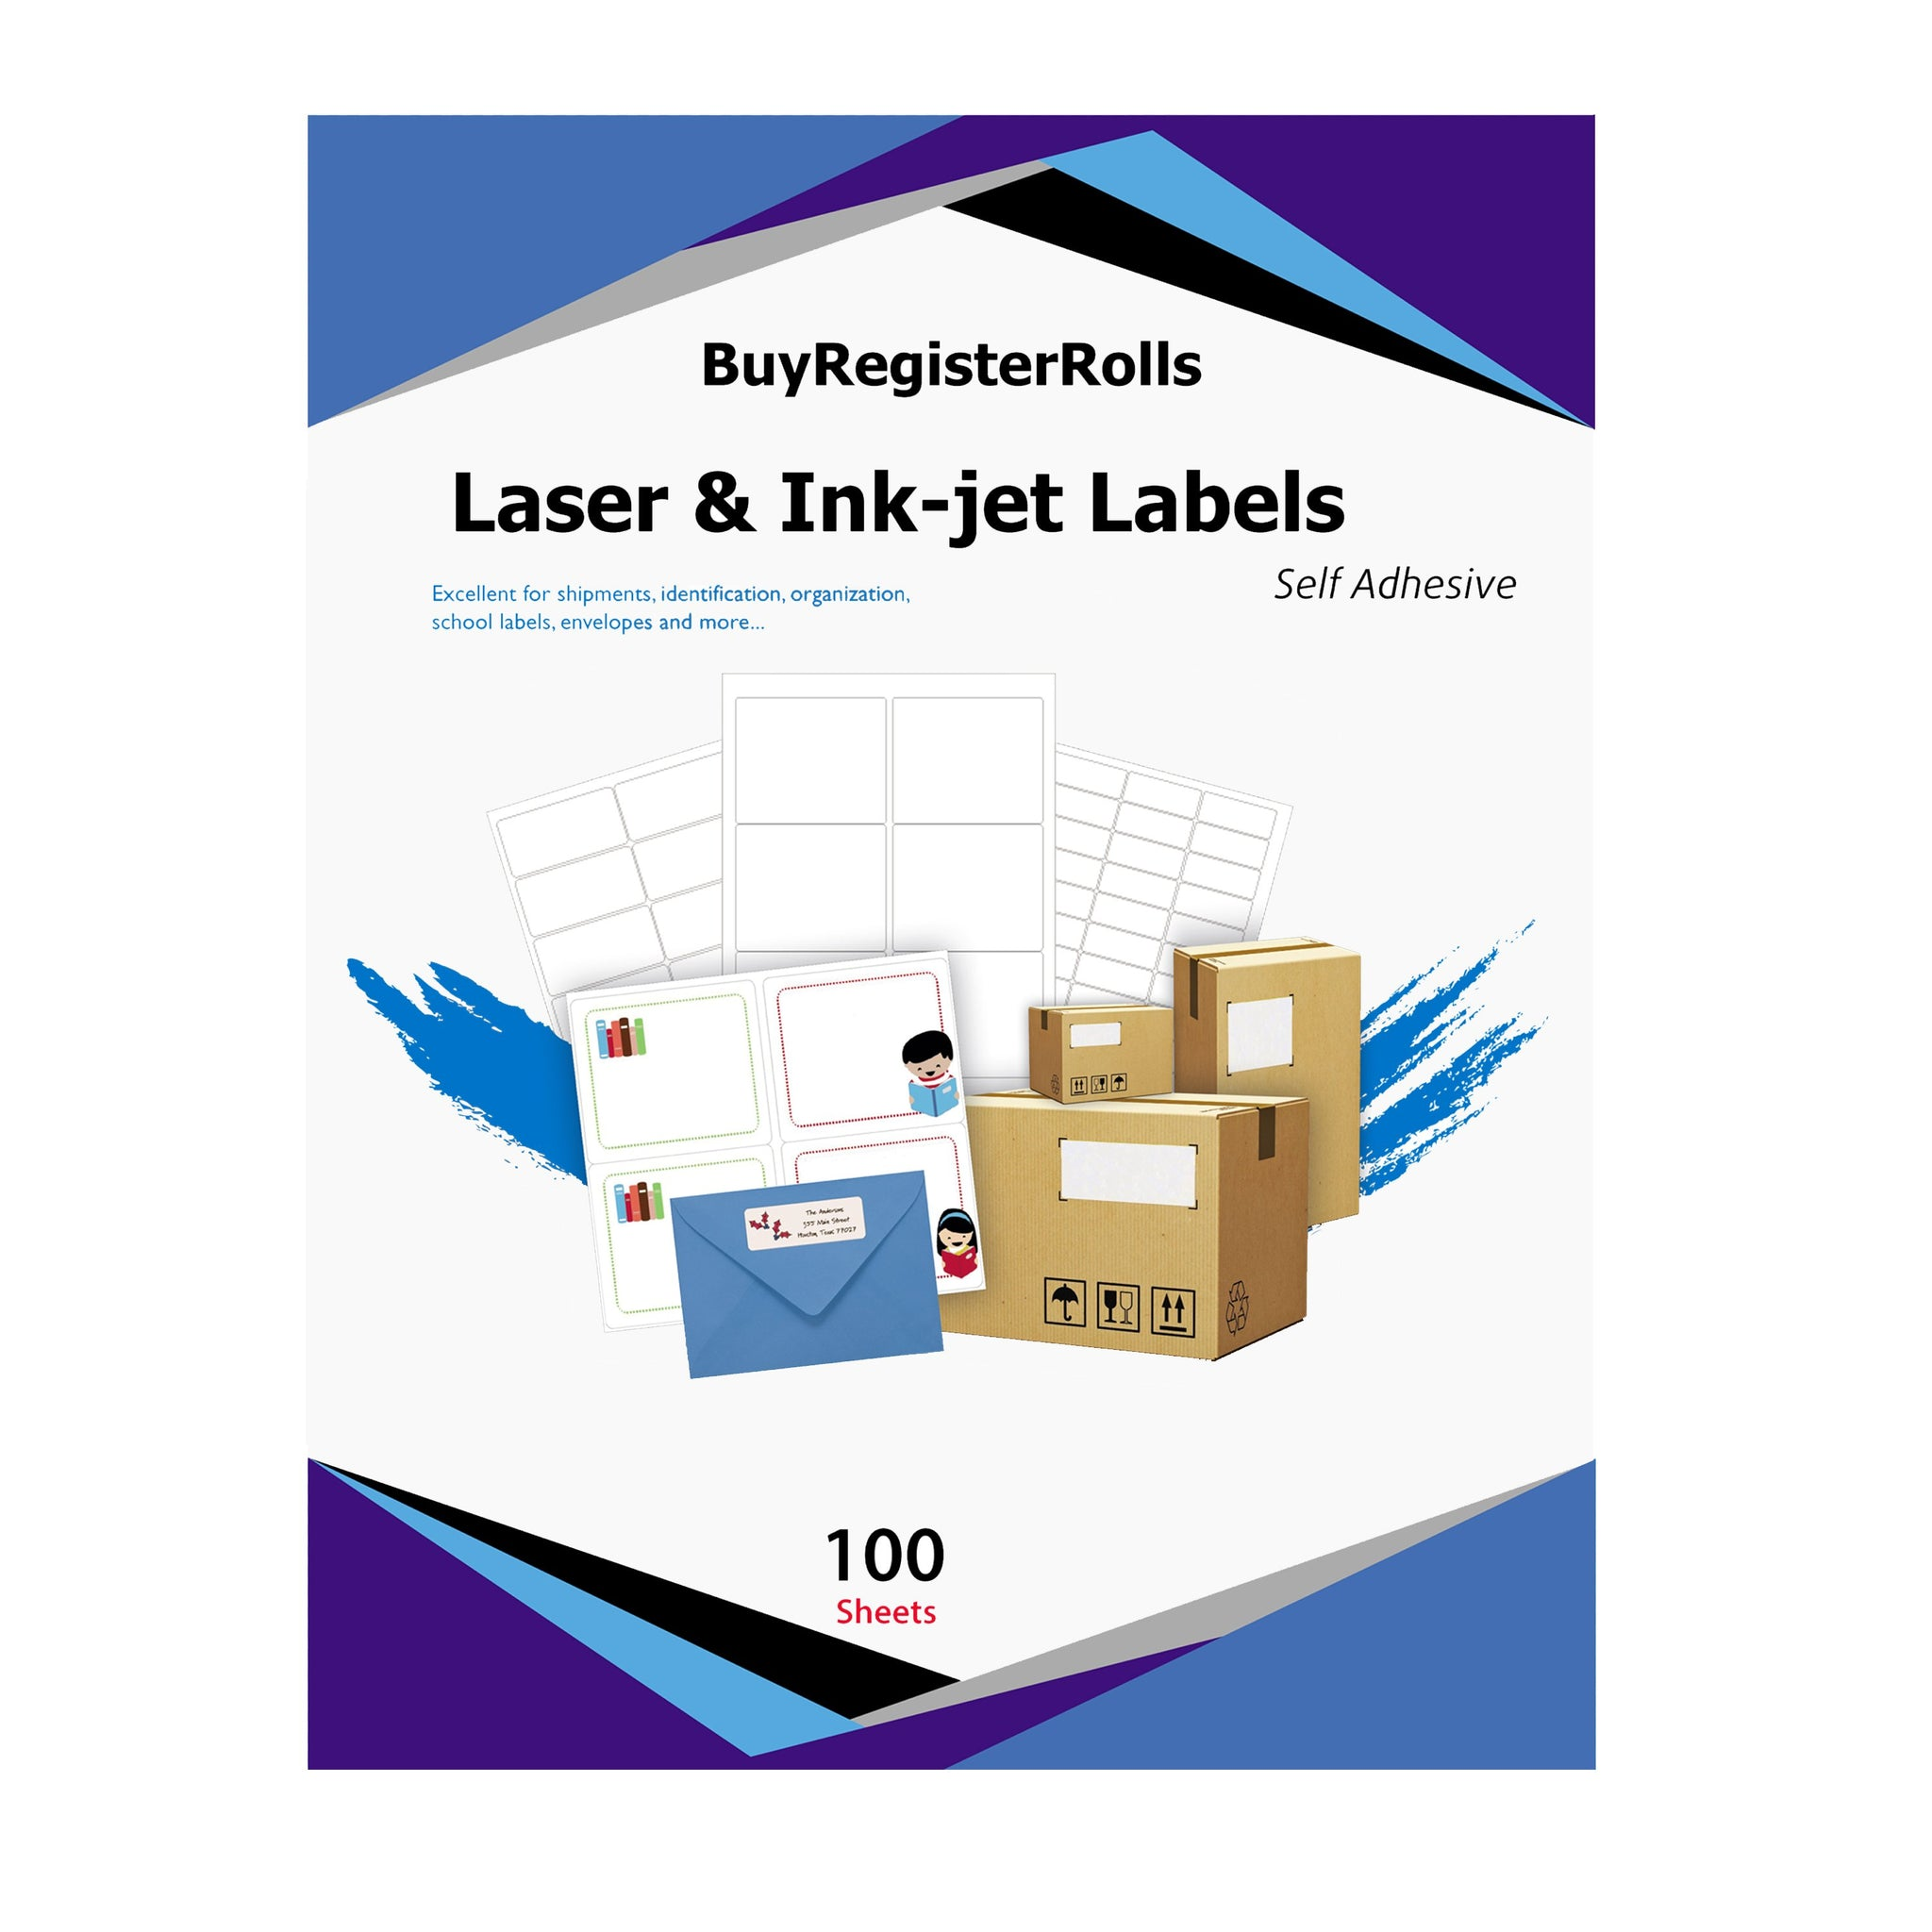 (250 Sheets) 10 up Shipping Address Labels 2x4 2500, Permanent Adhesive, TrueBlock (5163) Ultra White Peel Off Labels for Laser or Inkjet Printers Great for FBA Label